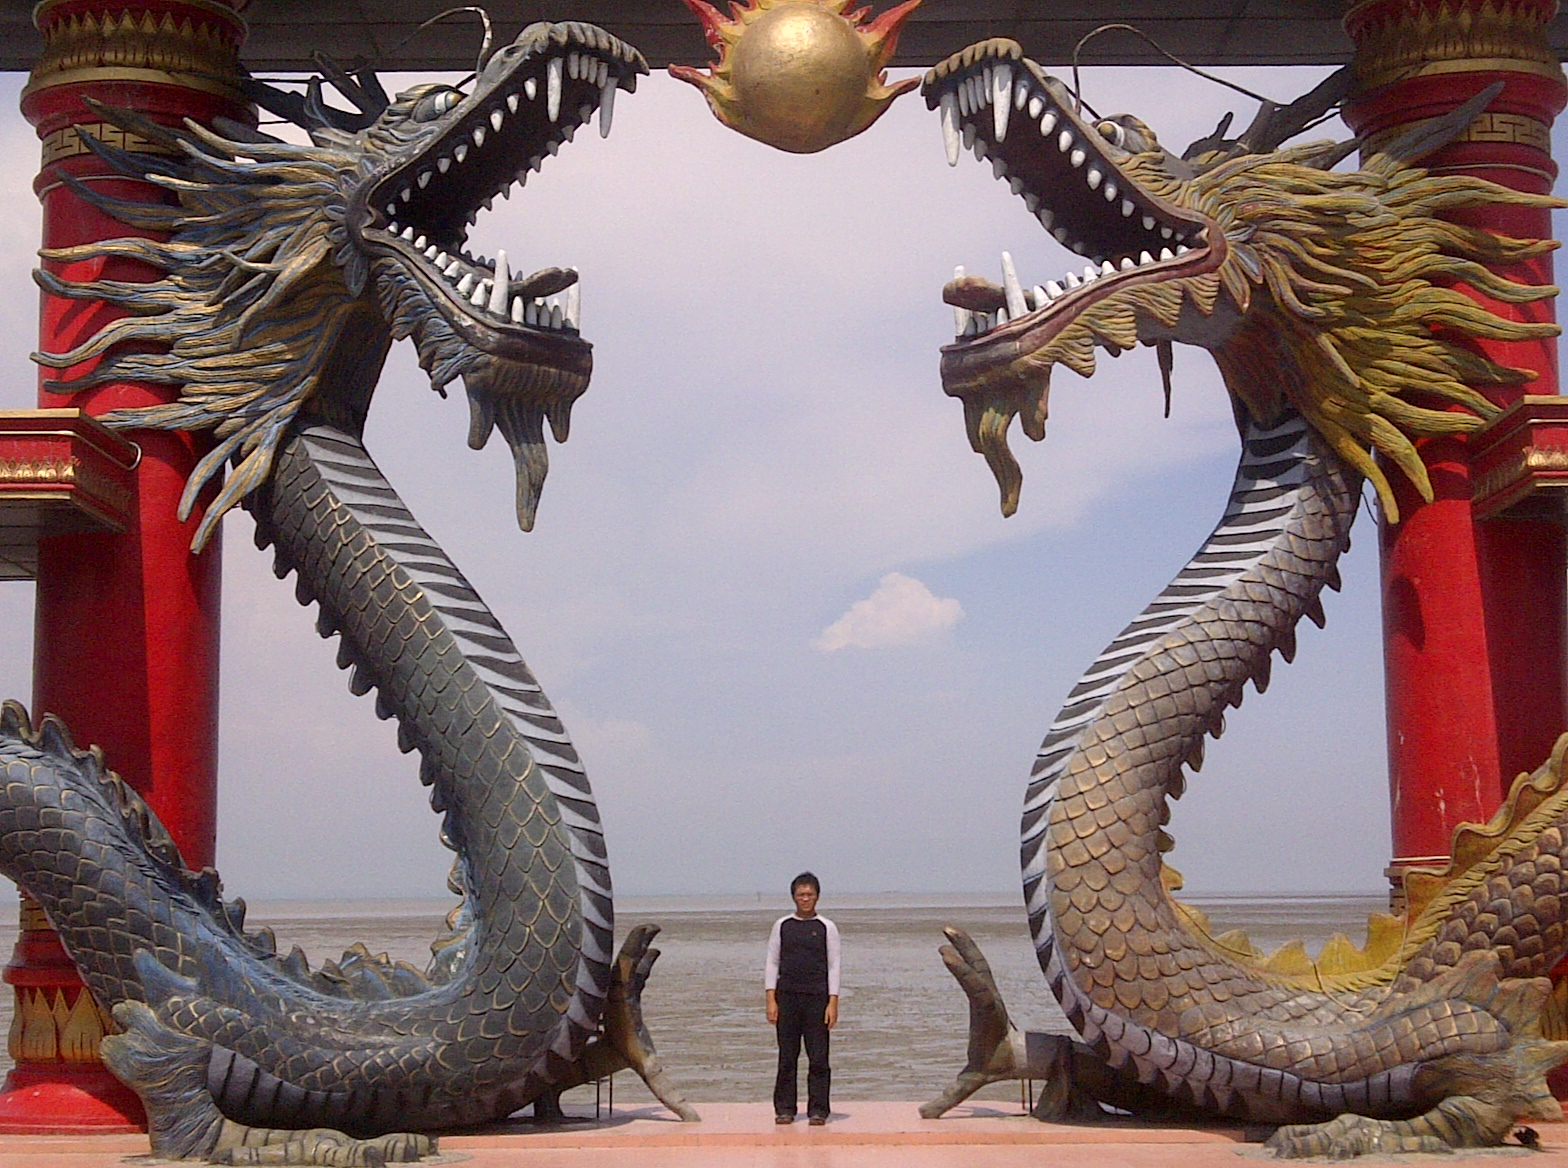 Giant Dragon Statue File A Visitor Of Sanggar Agung Temple Toke A Picture Under The